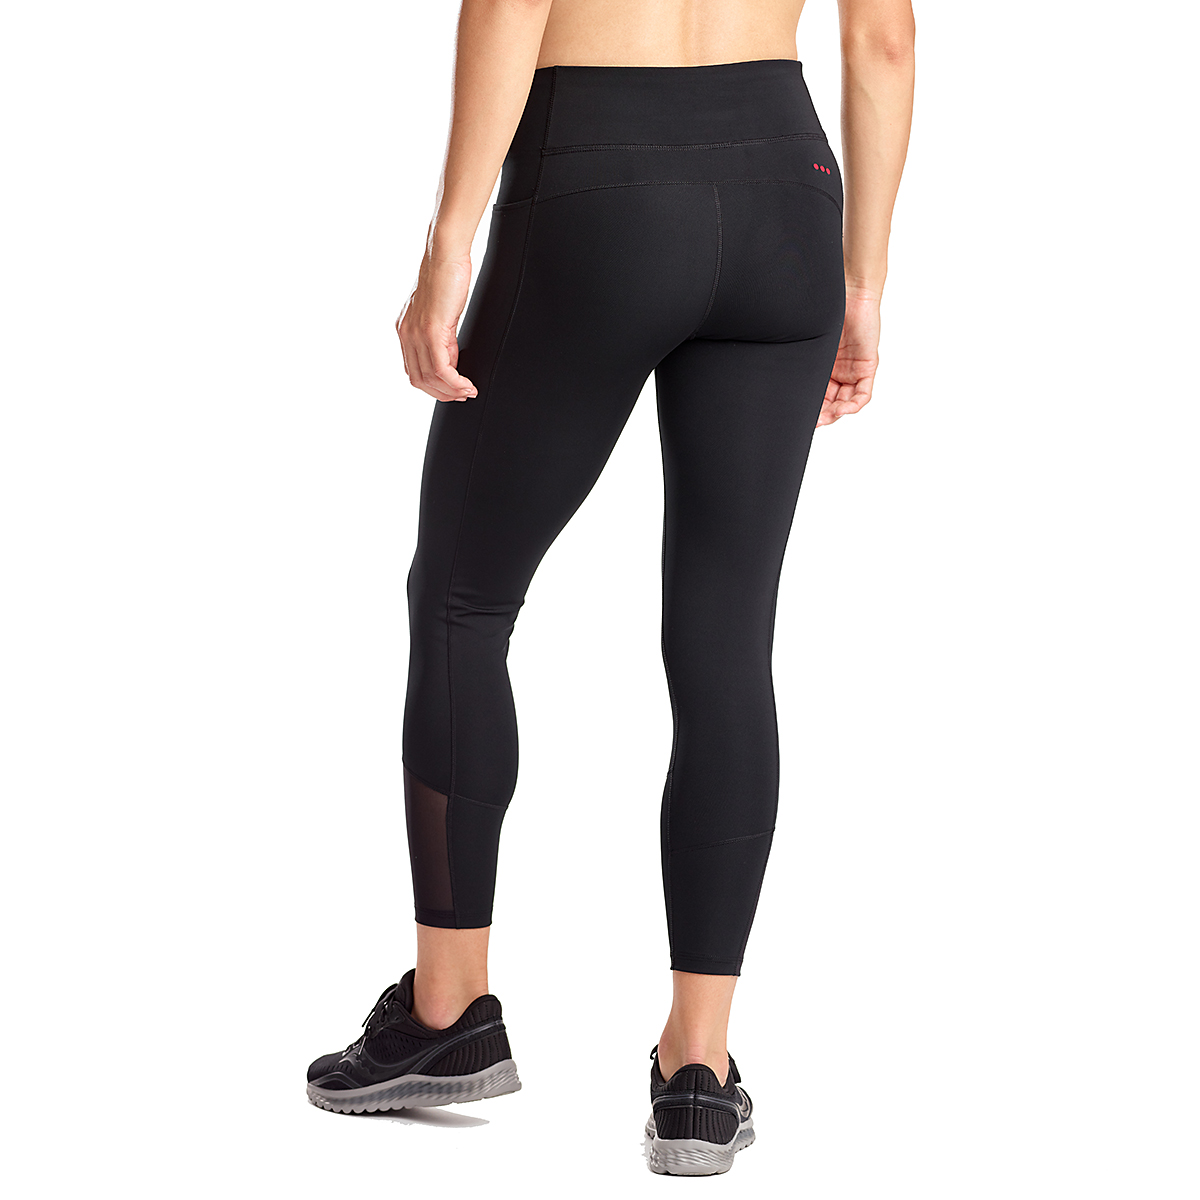 Women's Saucony Fortify 7/8 Tight - Color: Black - Size: XXS, Black, large, image 2